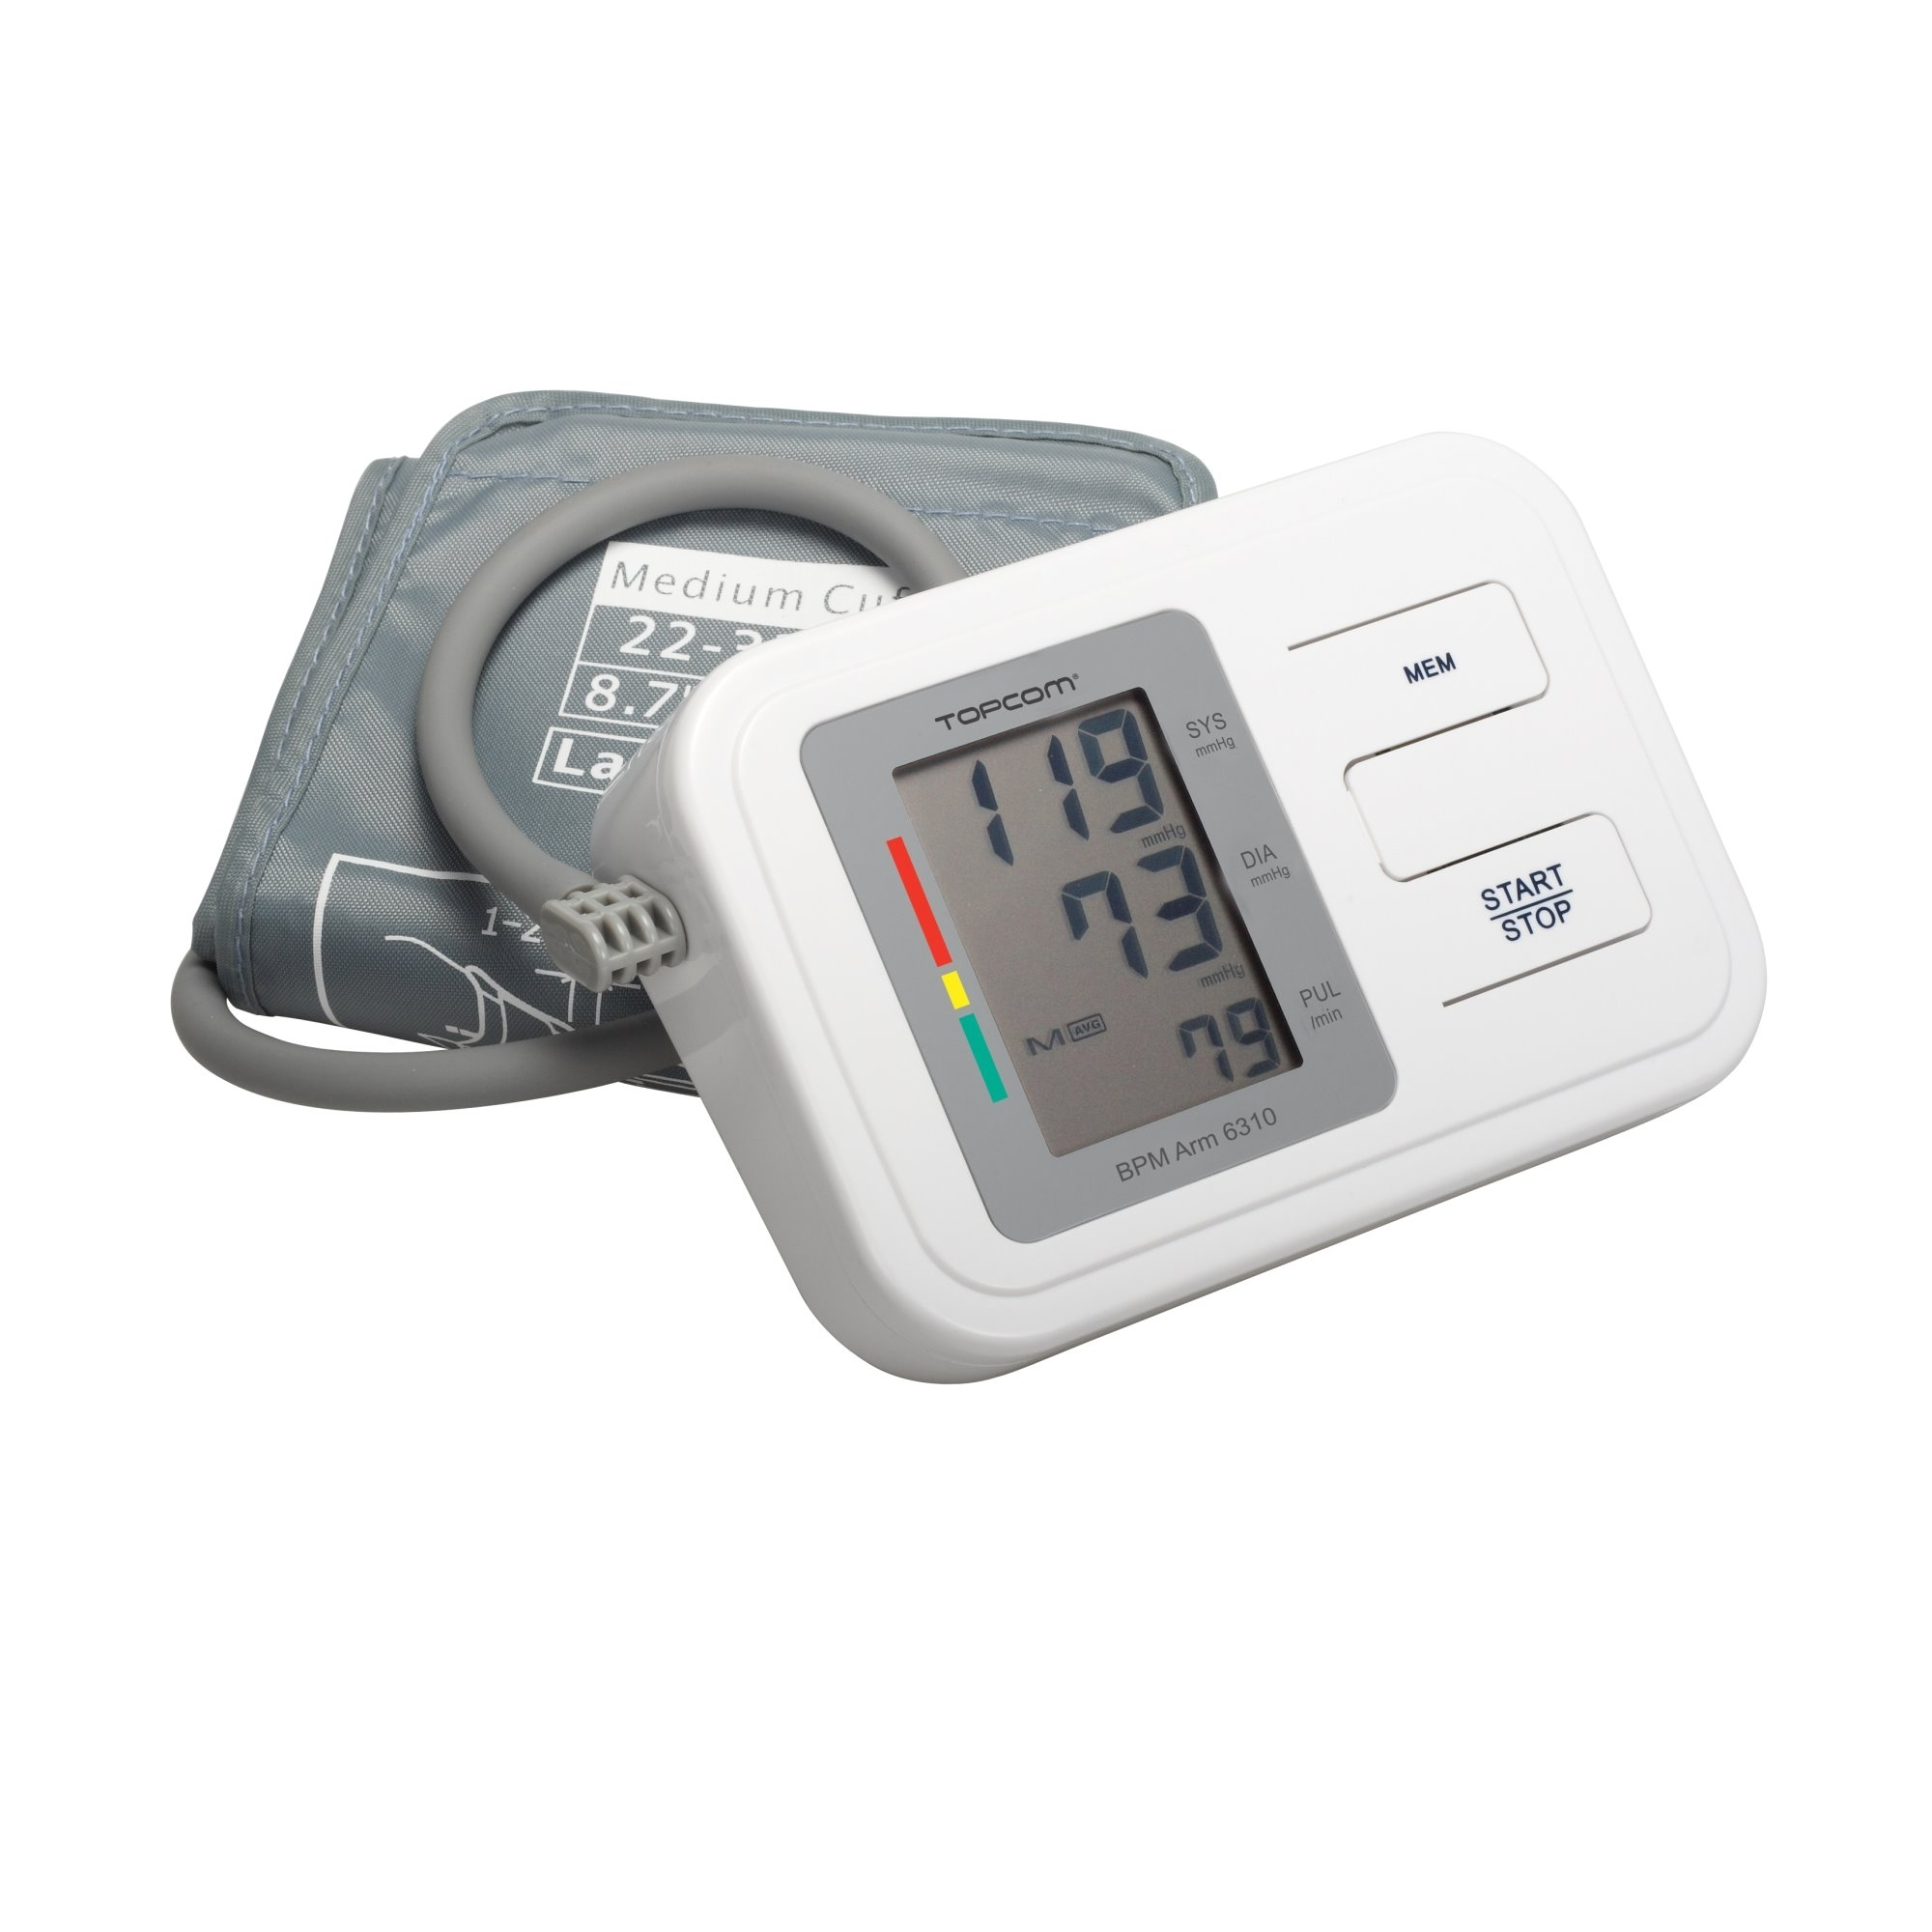 medical devices in nursing blood glucose monitoring device 23 blood glucose and ketone testing equipment 26-7  under general  medical council guidelines if the patient does  degludec (tresiba)- only  available in pen device- contact your local diabetes specialist nurse for.